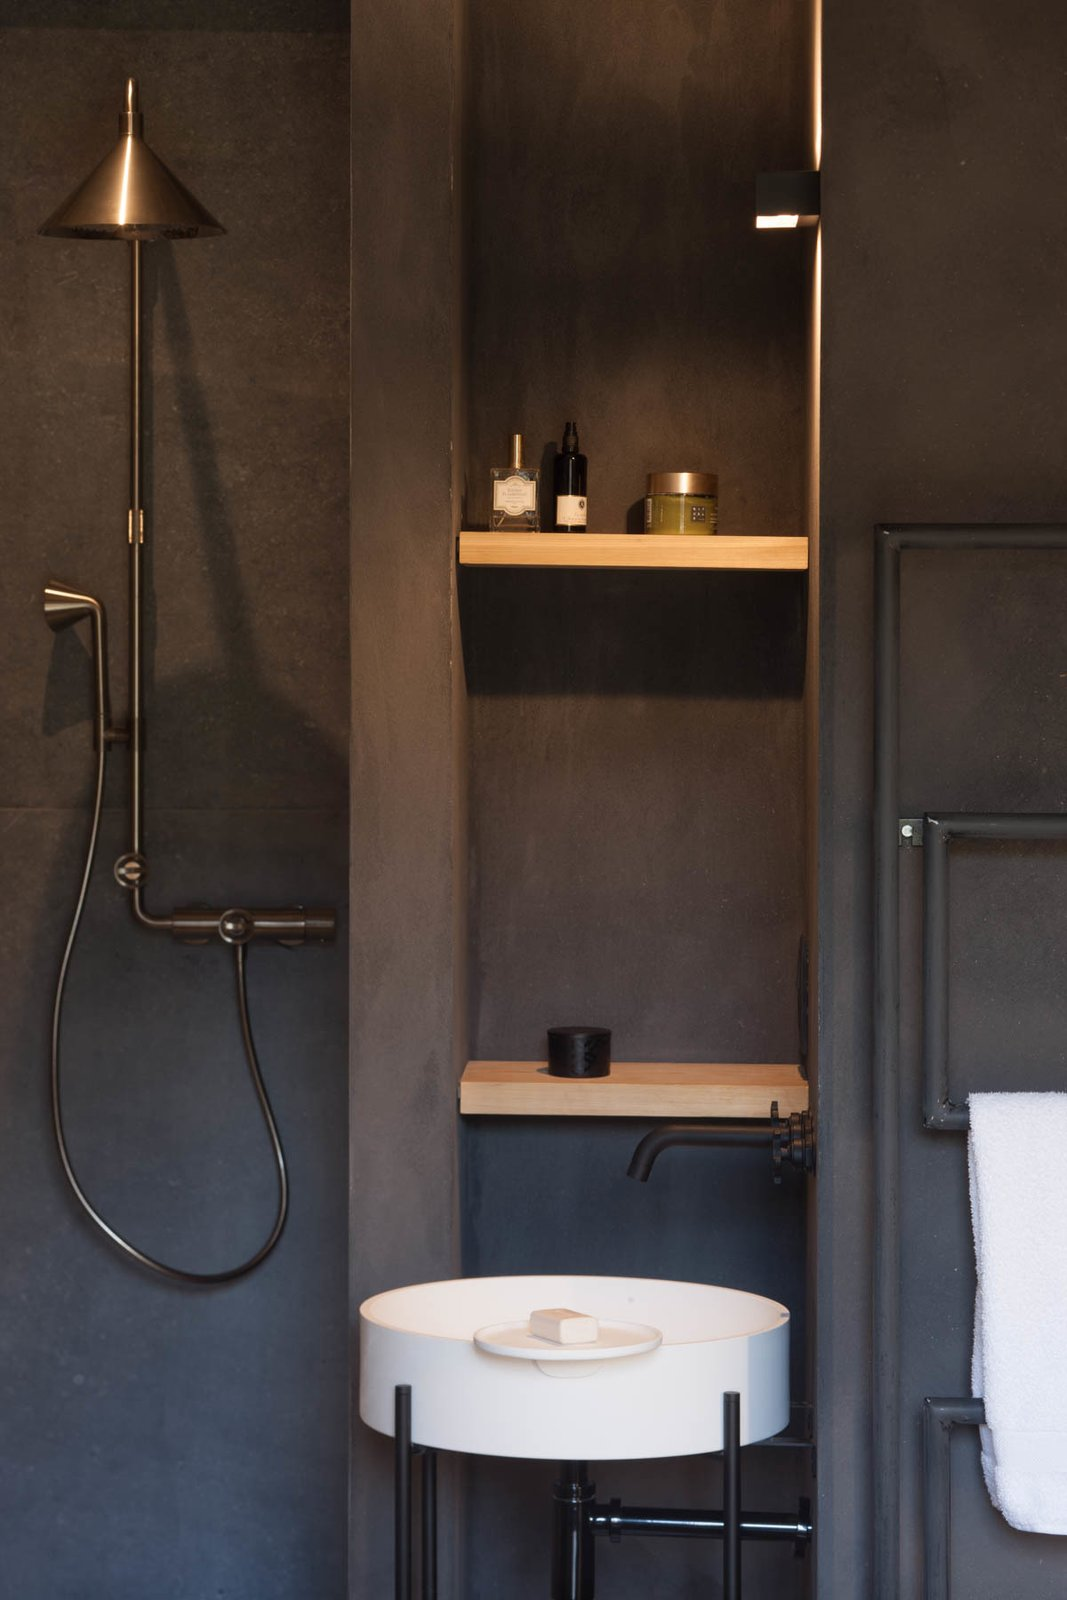 Bath Room, Pedestal Sink, Open Shower, Wall Lighting, and Concrete Wall  Photo 11 of 16 in Stay at an Old Converted Train Station in the Belgian Countryside